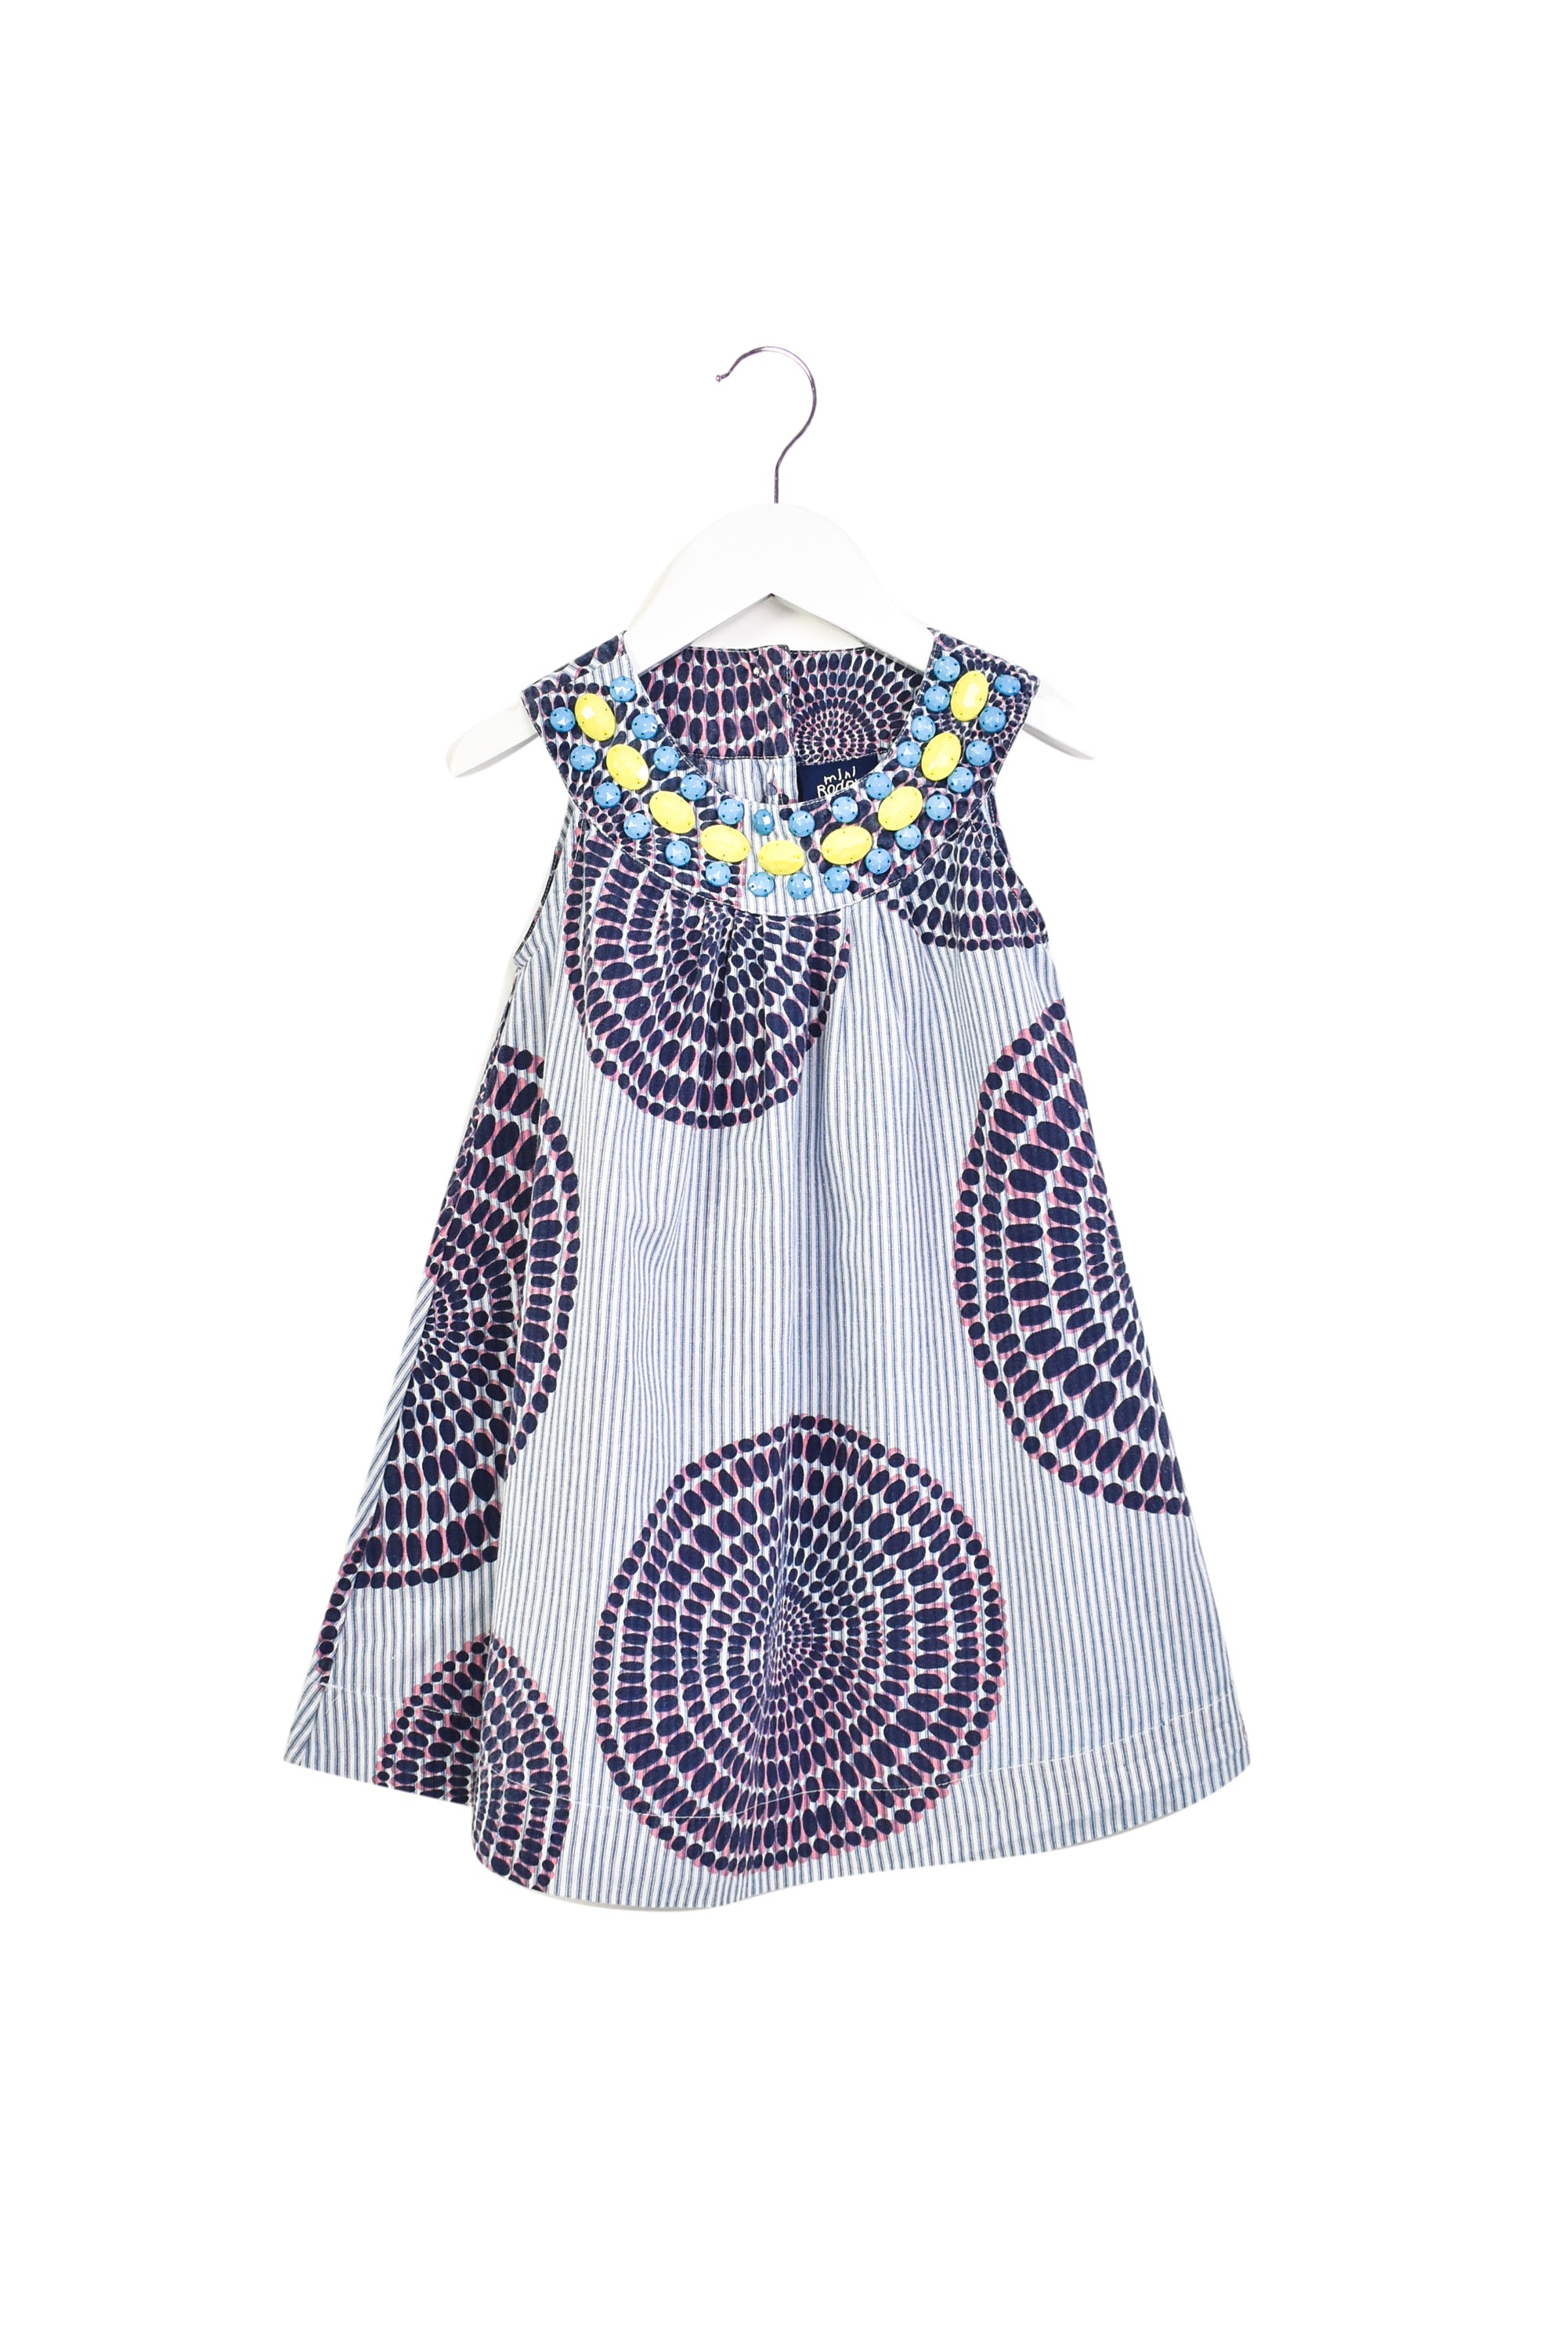 10013268 Boden Kids ~ Dress 3-4T at Retykle